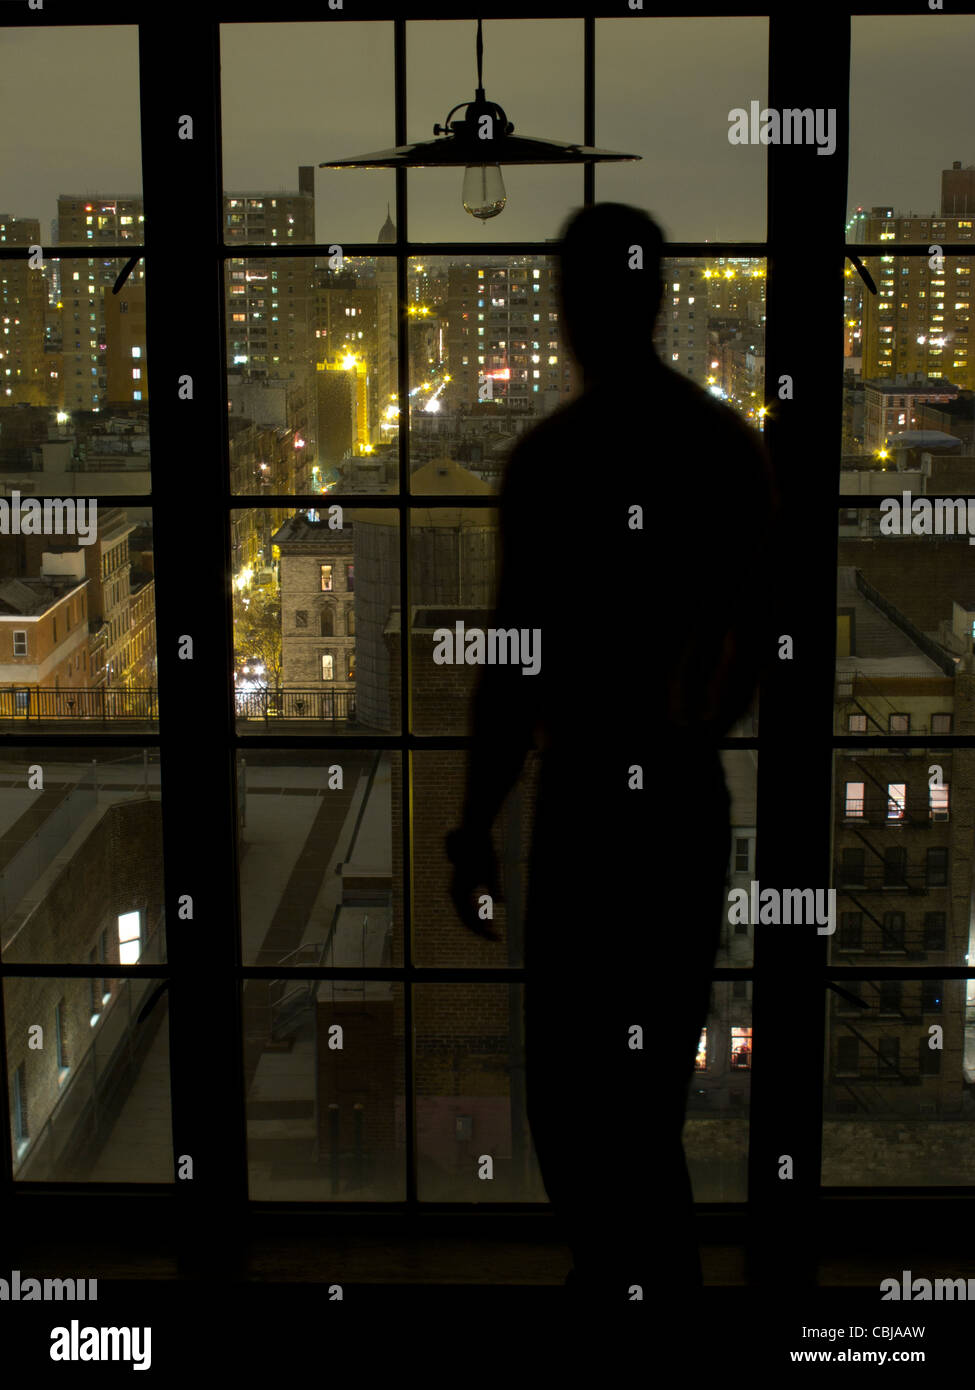 Silhouette of Man at window at night overlooking downtown Manhattan, New York City, New York, USA - Stock Image